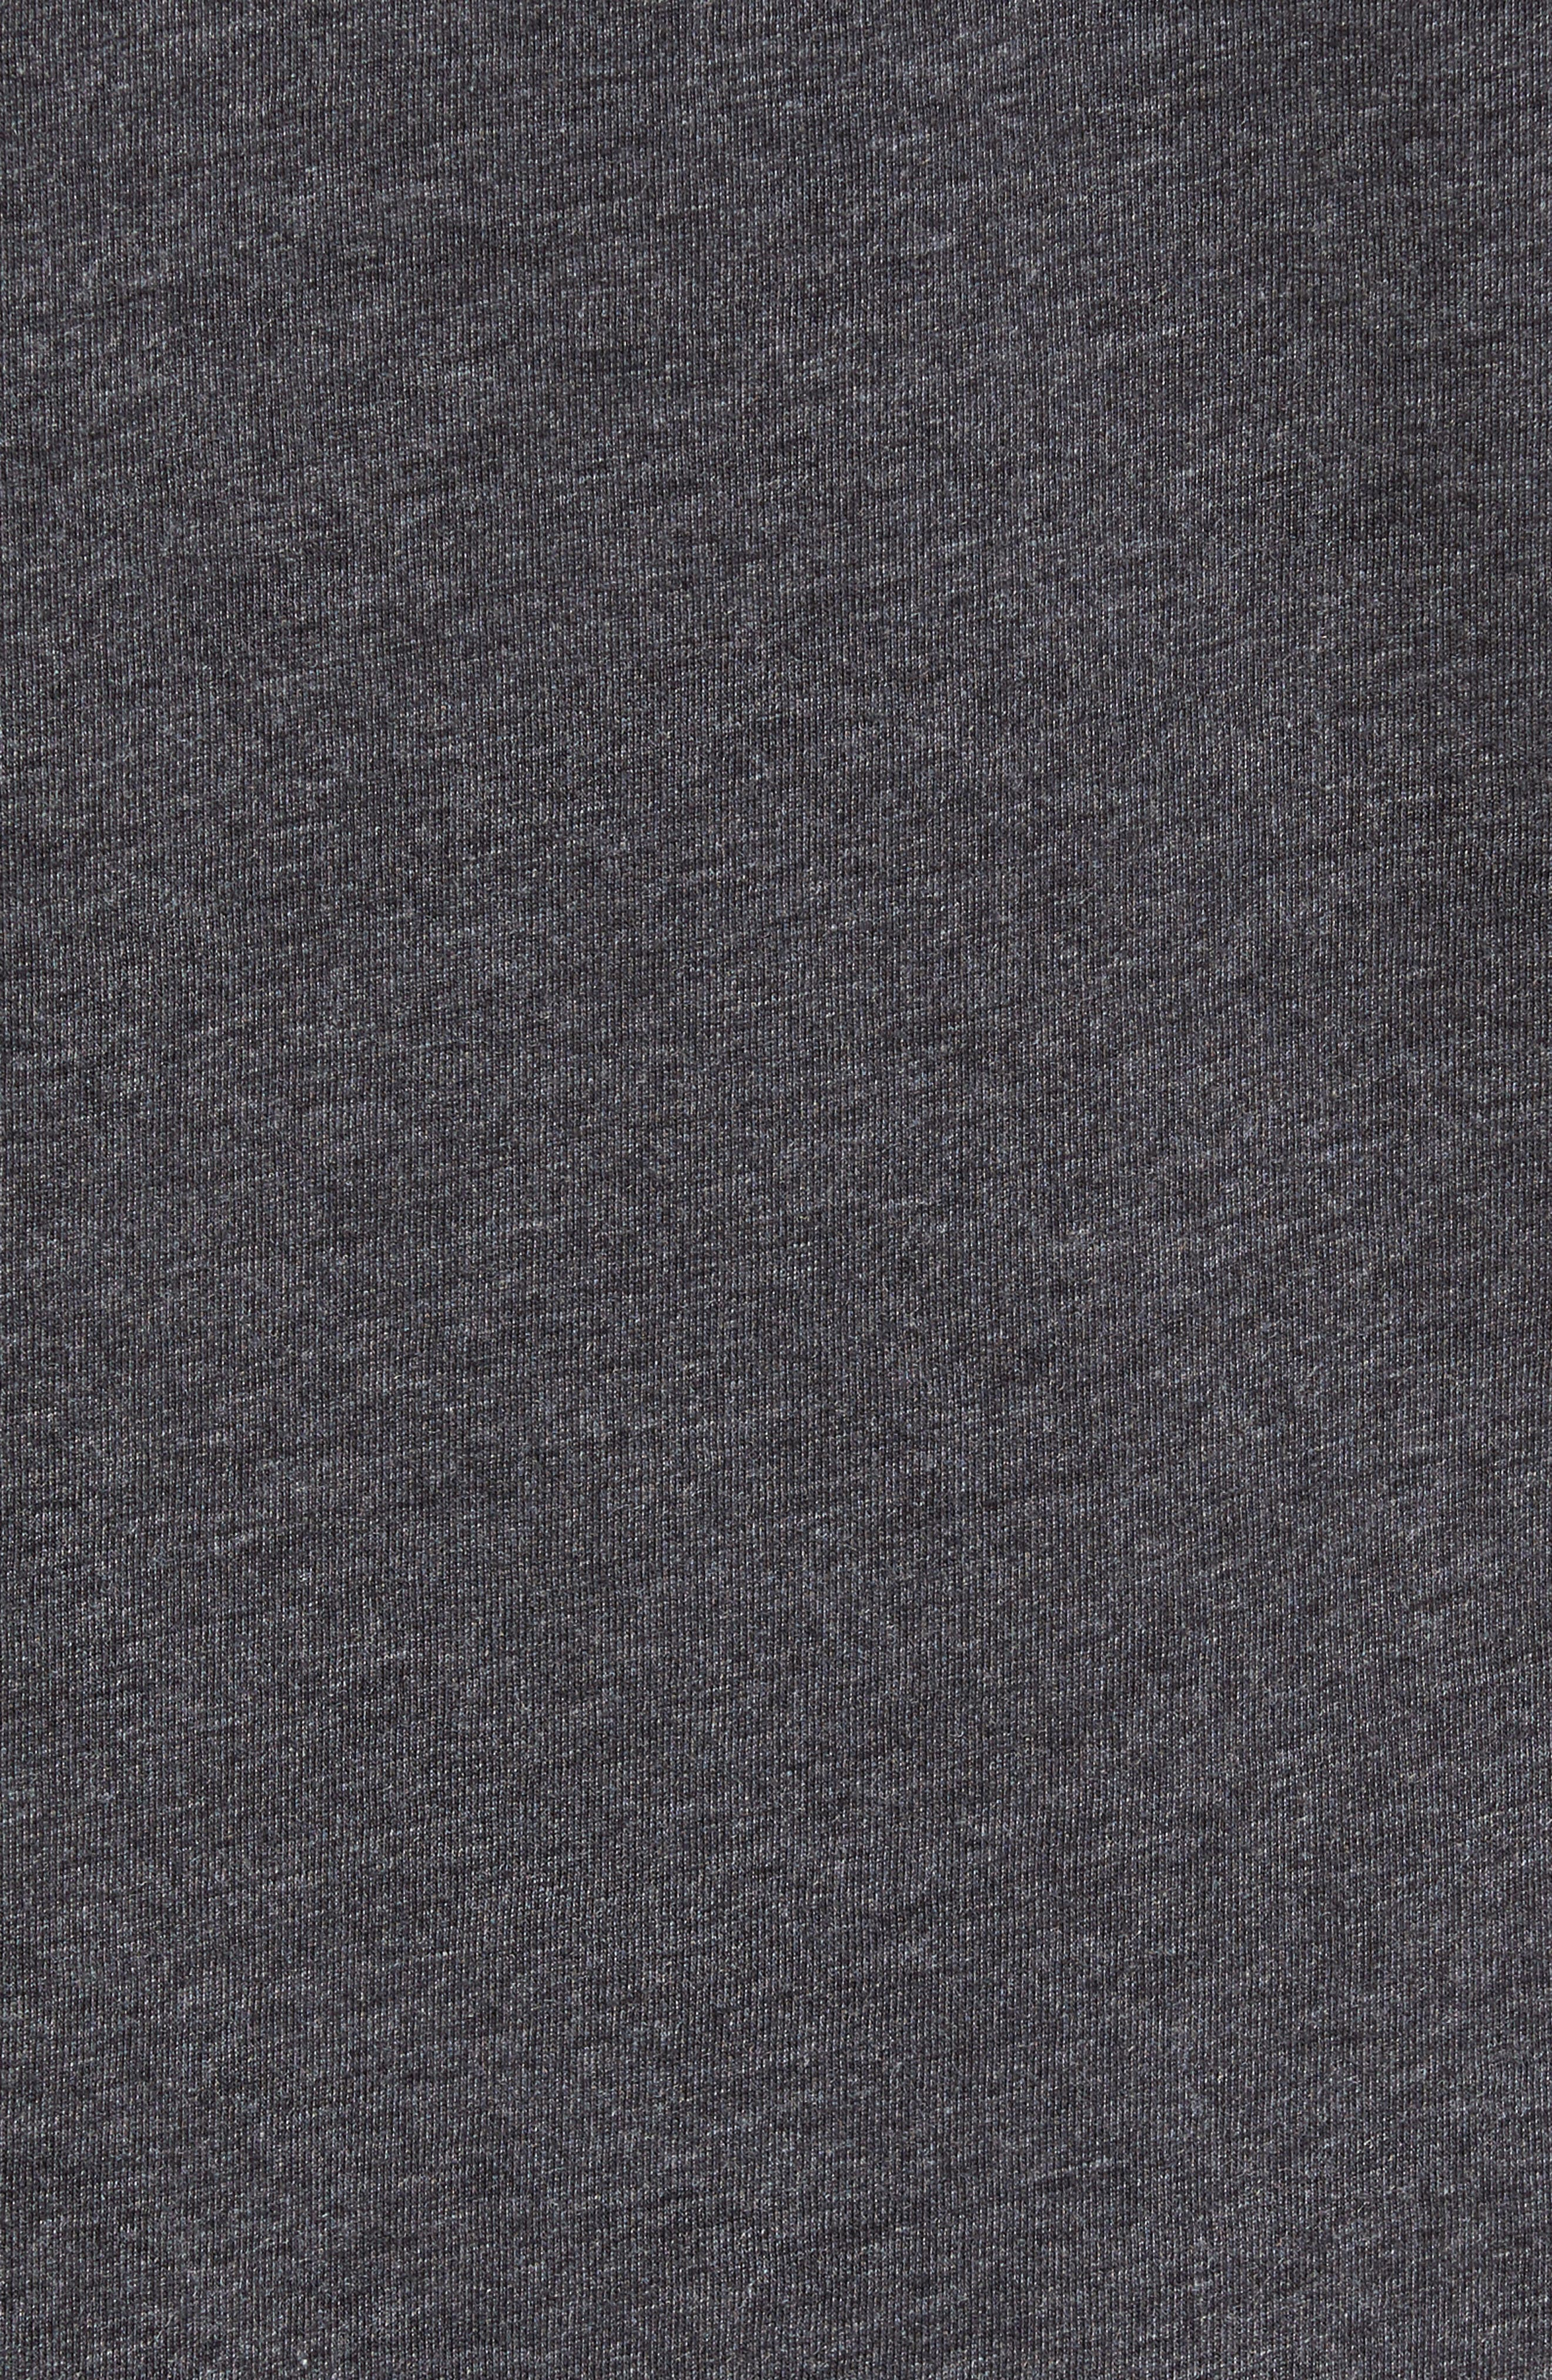 Grid All the Way Graphic T-Shirt,                             Alternate thumbnail 5, color,                             001